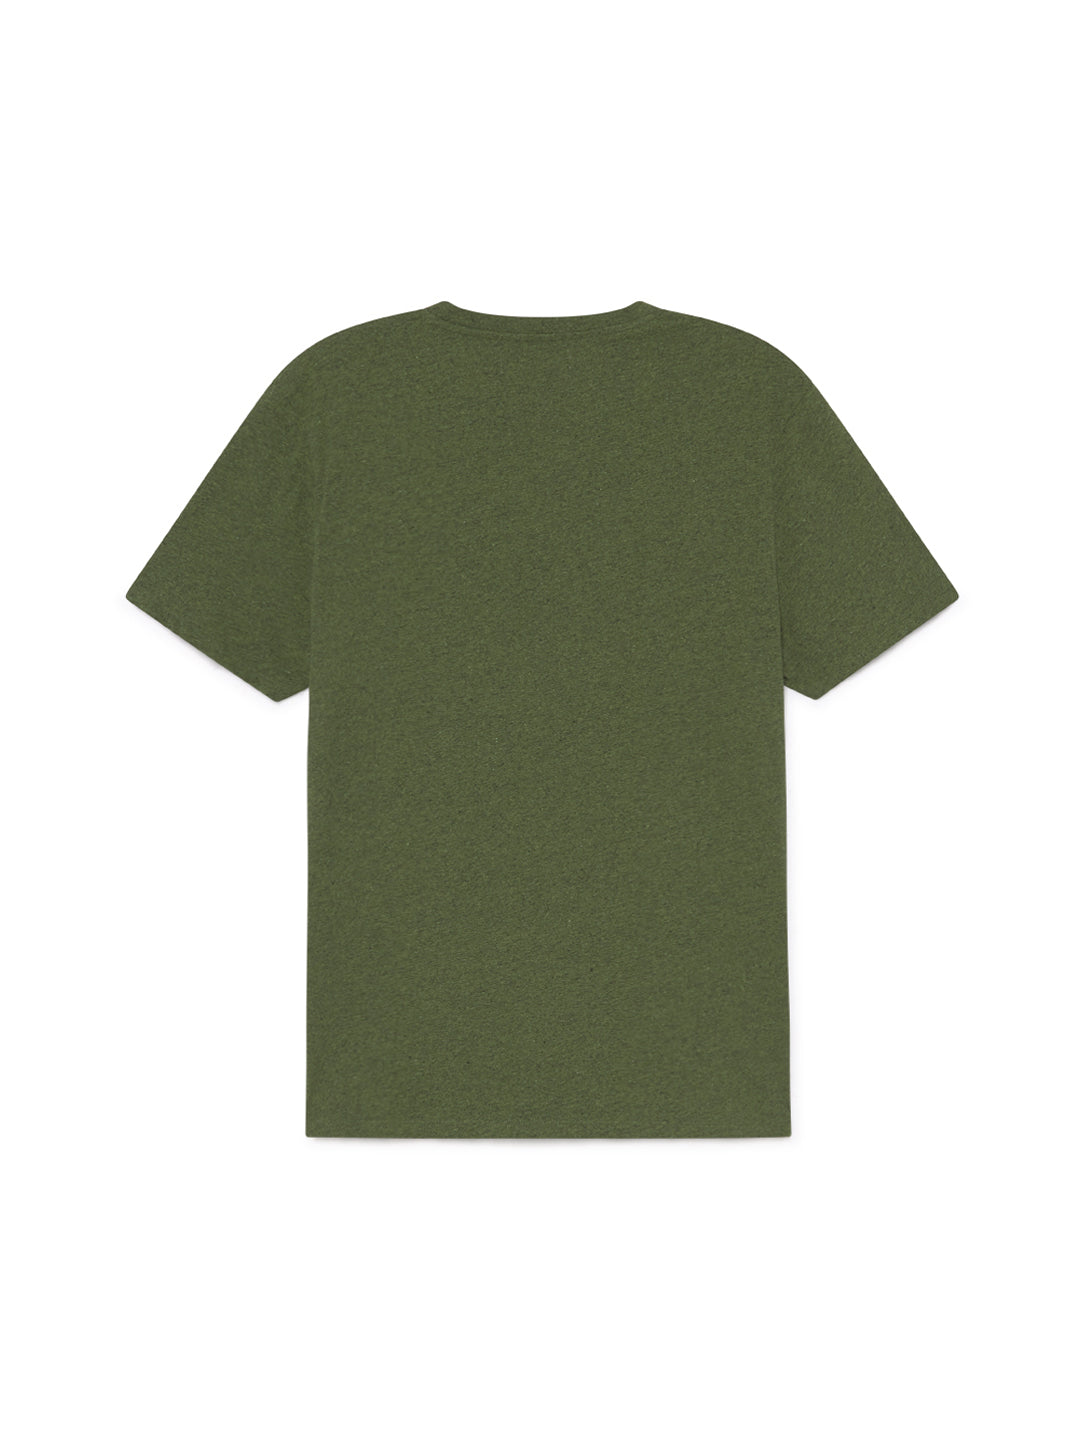 TWOTHIRDS Mens Tee: Graham - Dark Green back